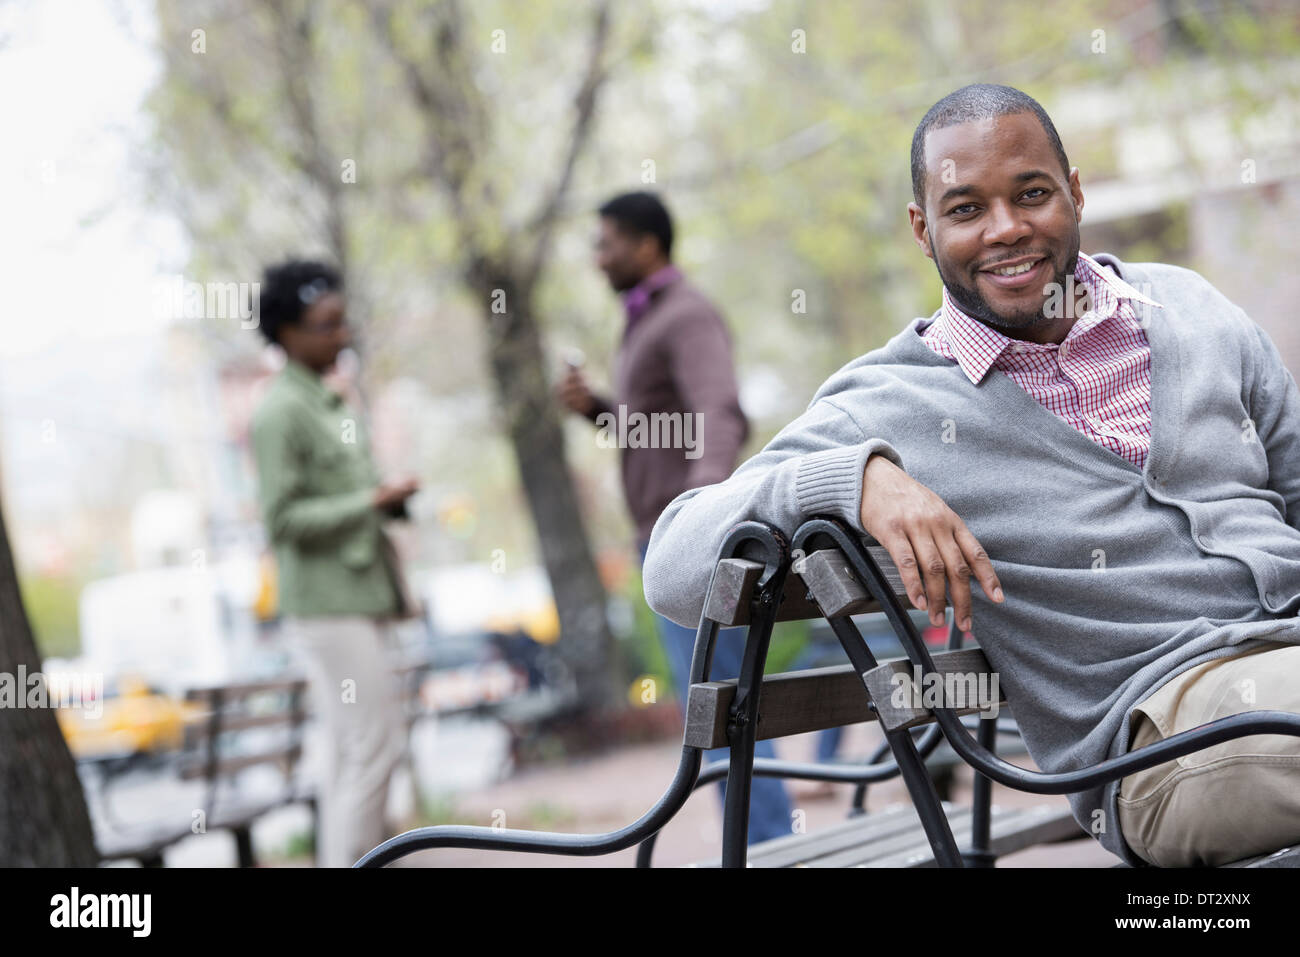 A man seated on a bench with two people in the background - Stock Image